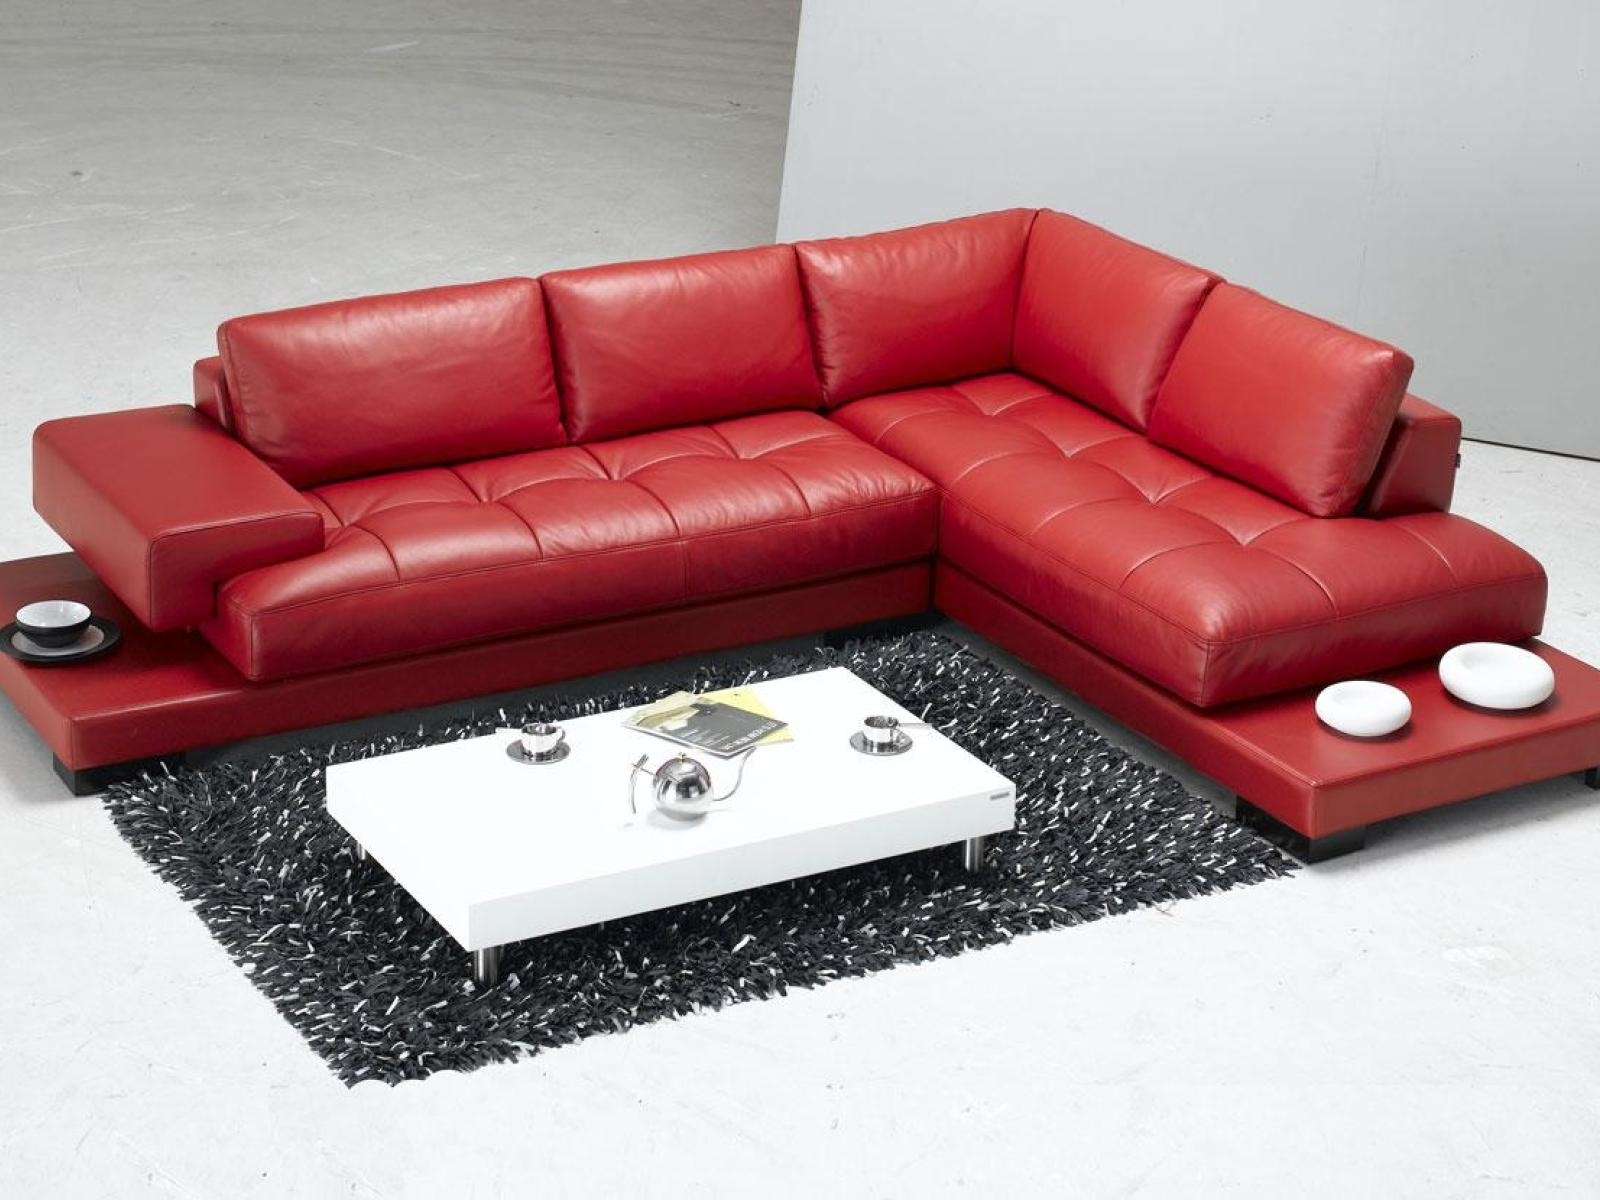 Sofa Red Leather Sectional Pink With Couches Faux Furniture Sale In Red Faux Leather Sectionals (Image 9 of 10)